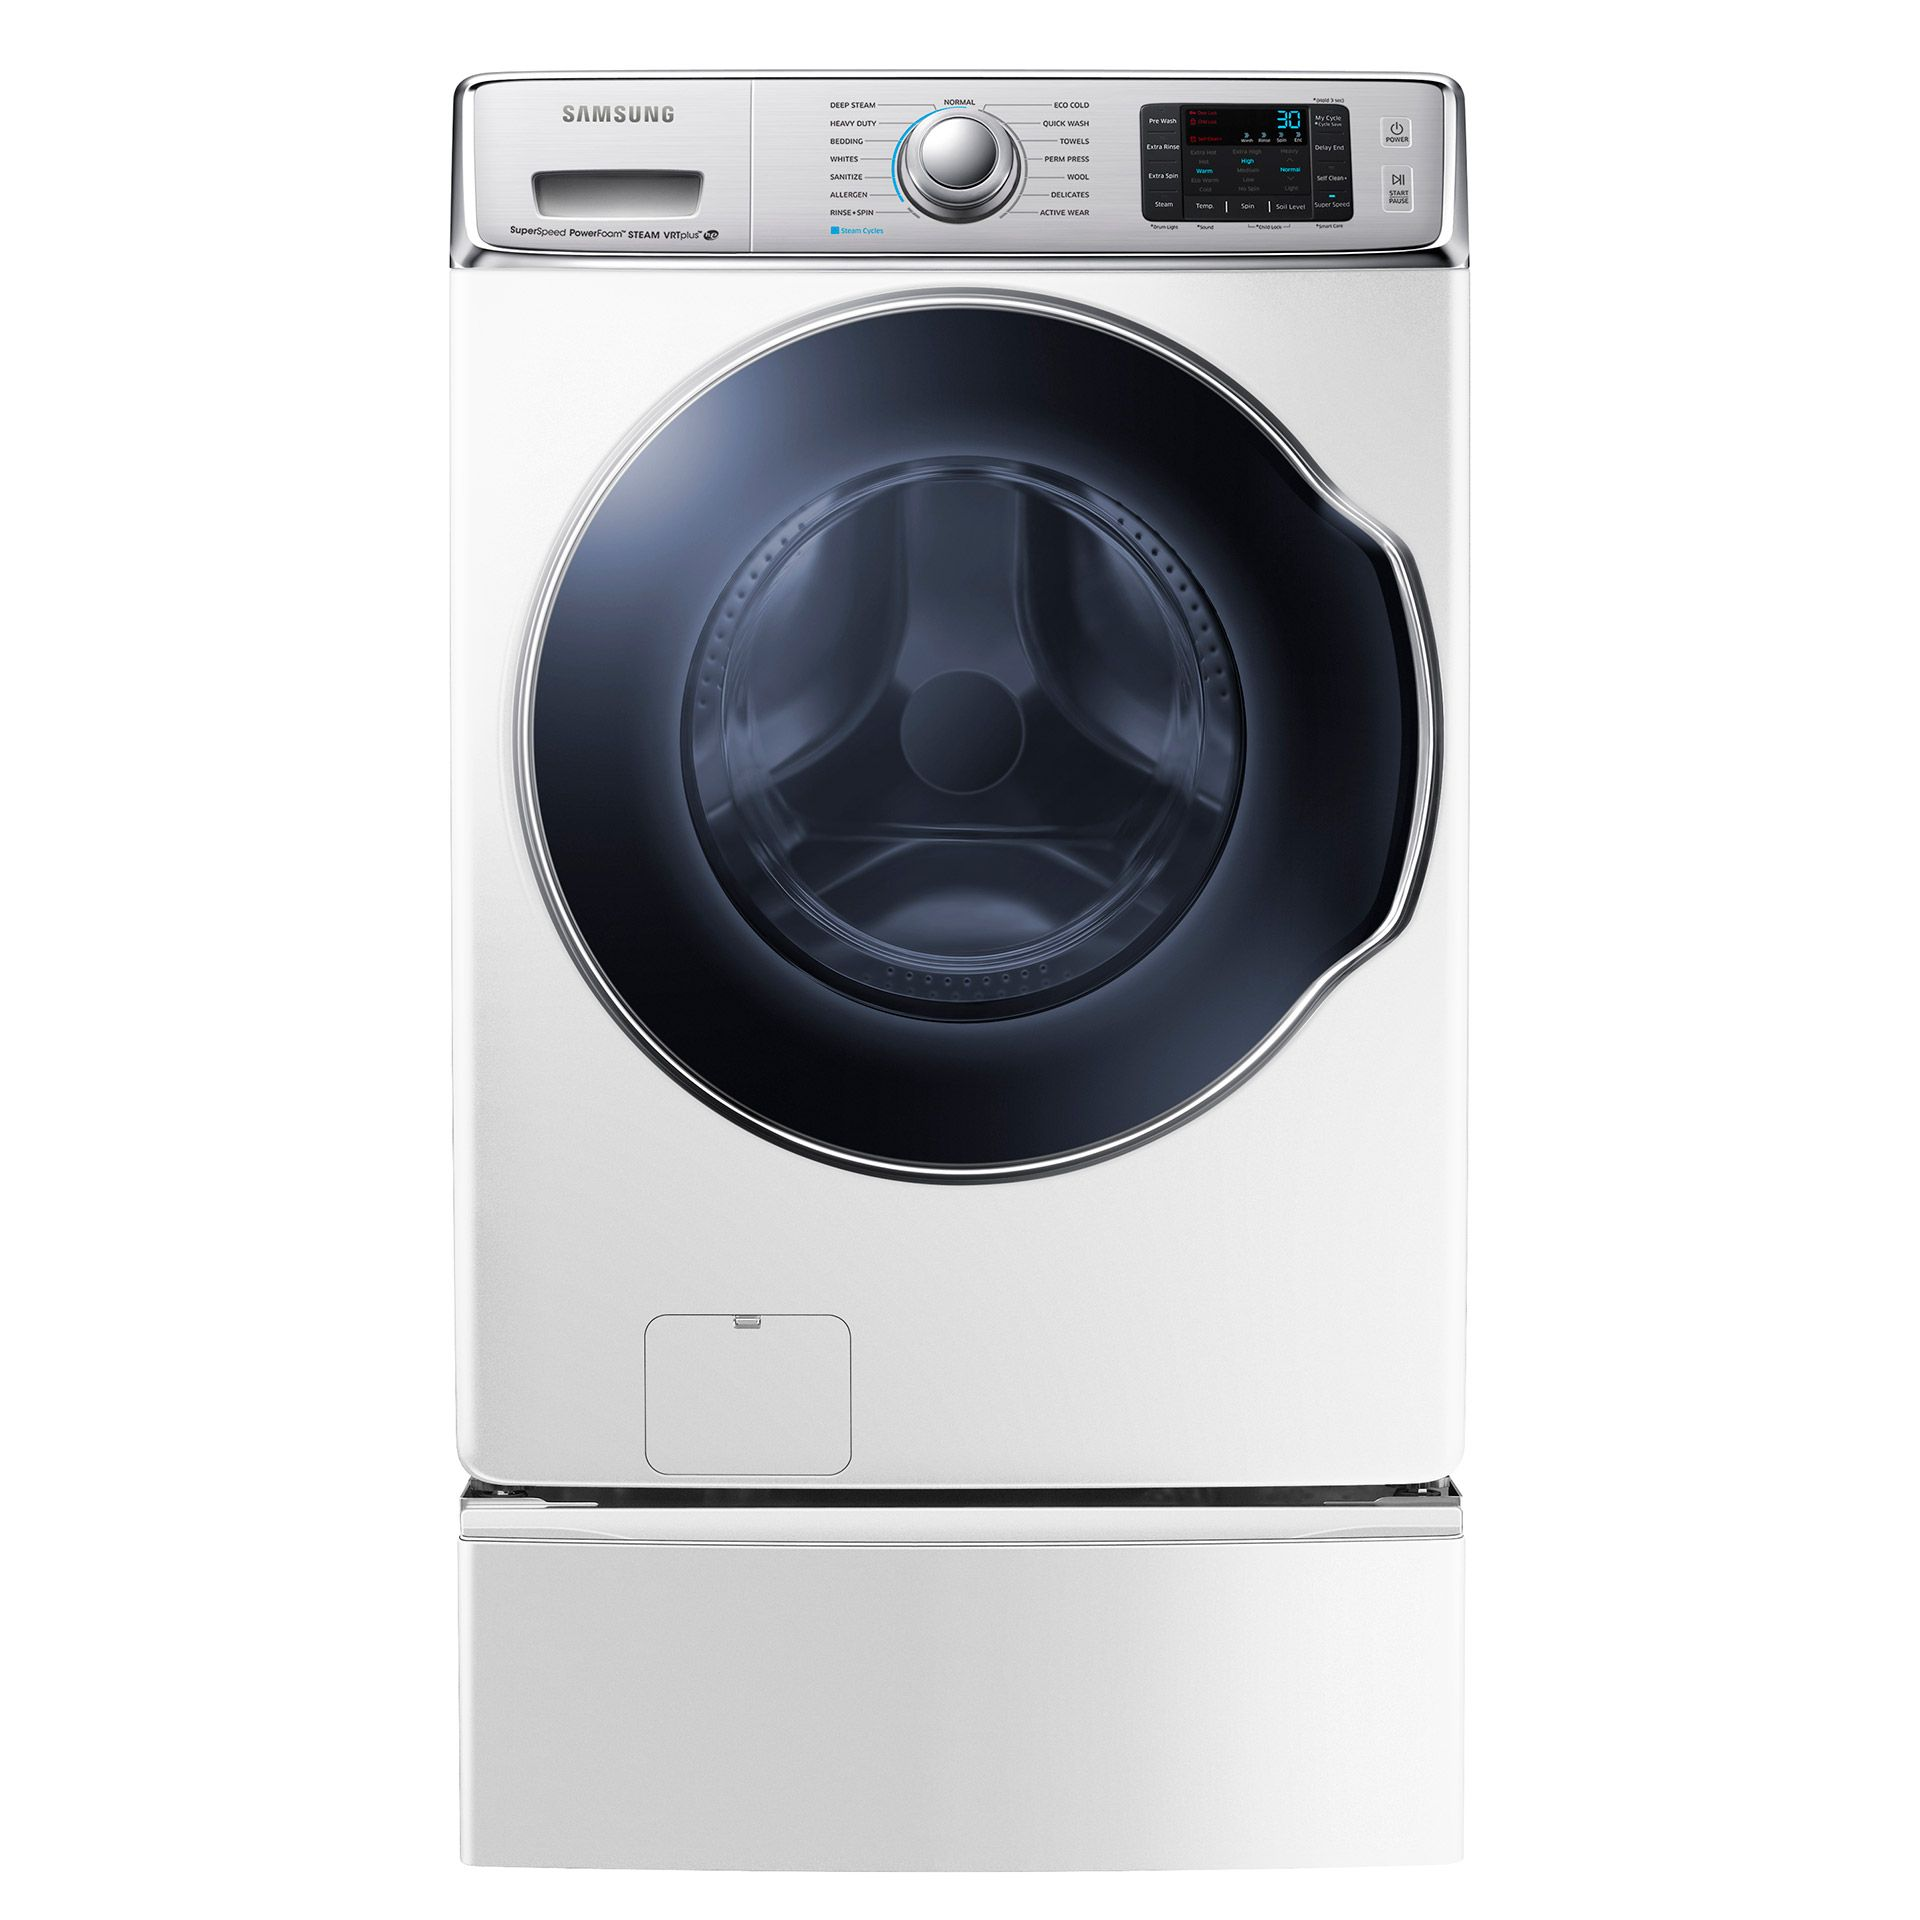 Samsung Front Load Washer Samsung 5 6 Cu Ft Front Load Steam Washer Wf56h9100ag Review